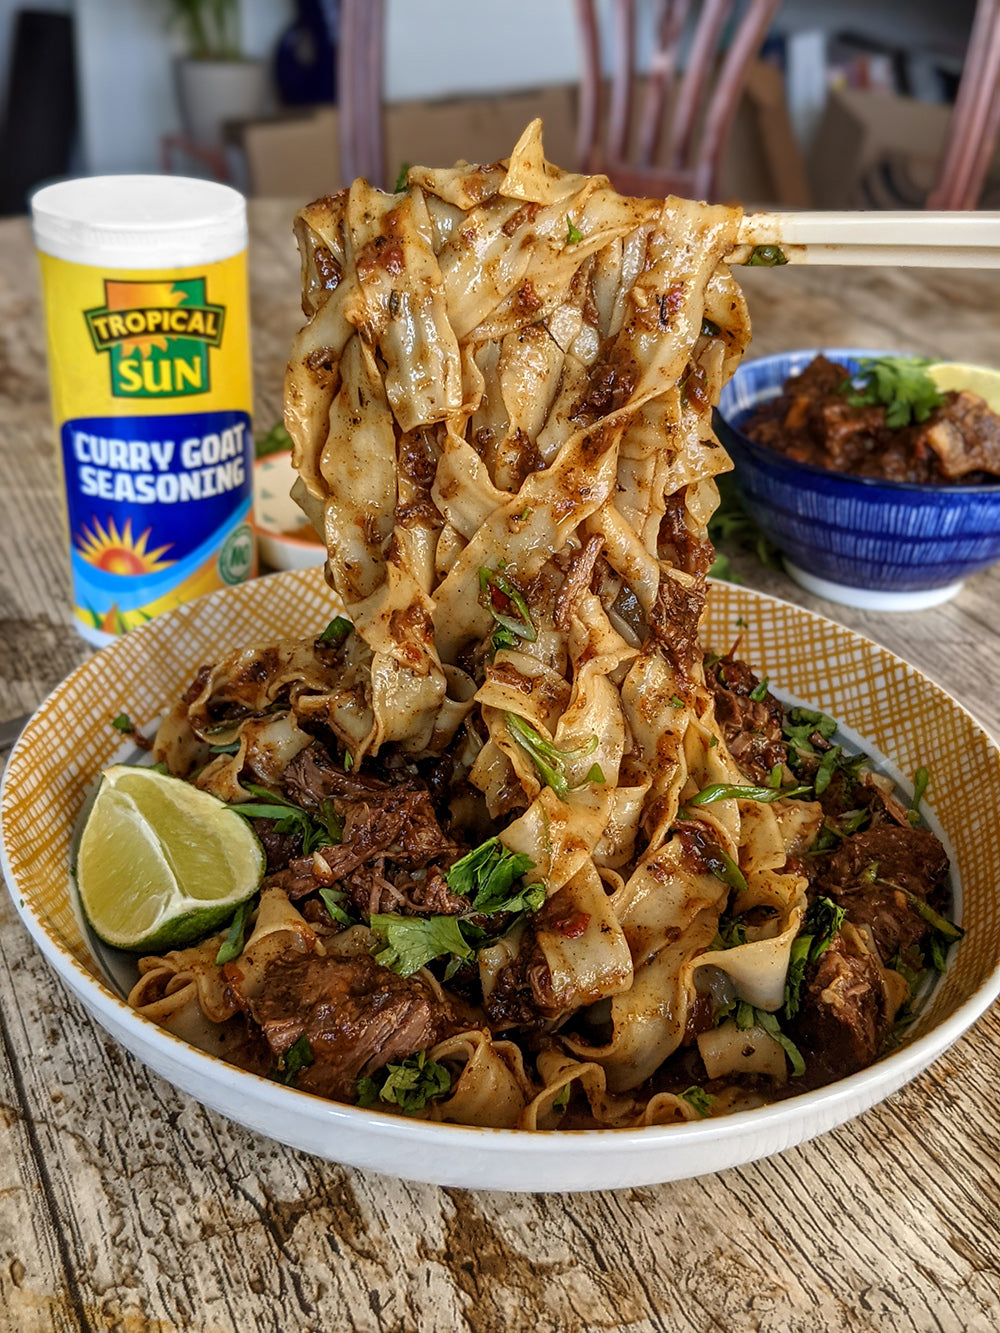 One Hungry Asian Curry Goat Noodles Tropical Sun Curry Goat Seasoning LQ